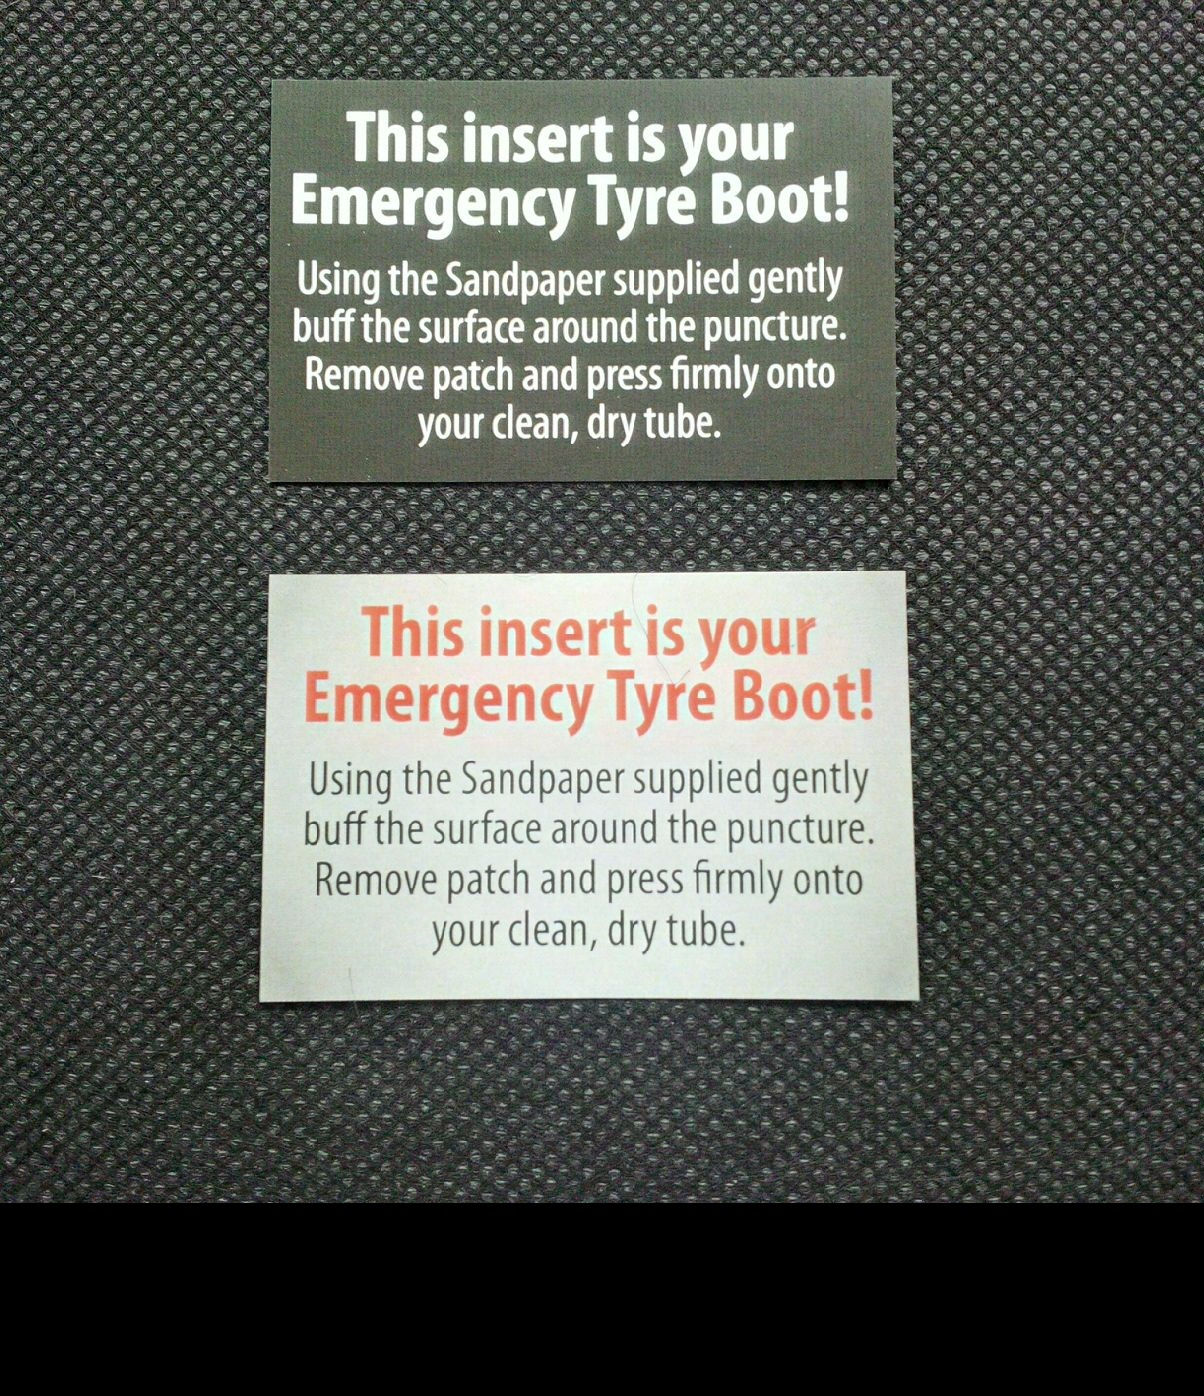 Emergency Tyre Boot Printed Inserts add value